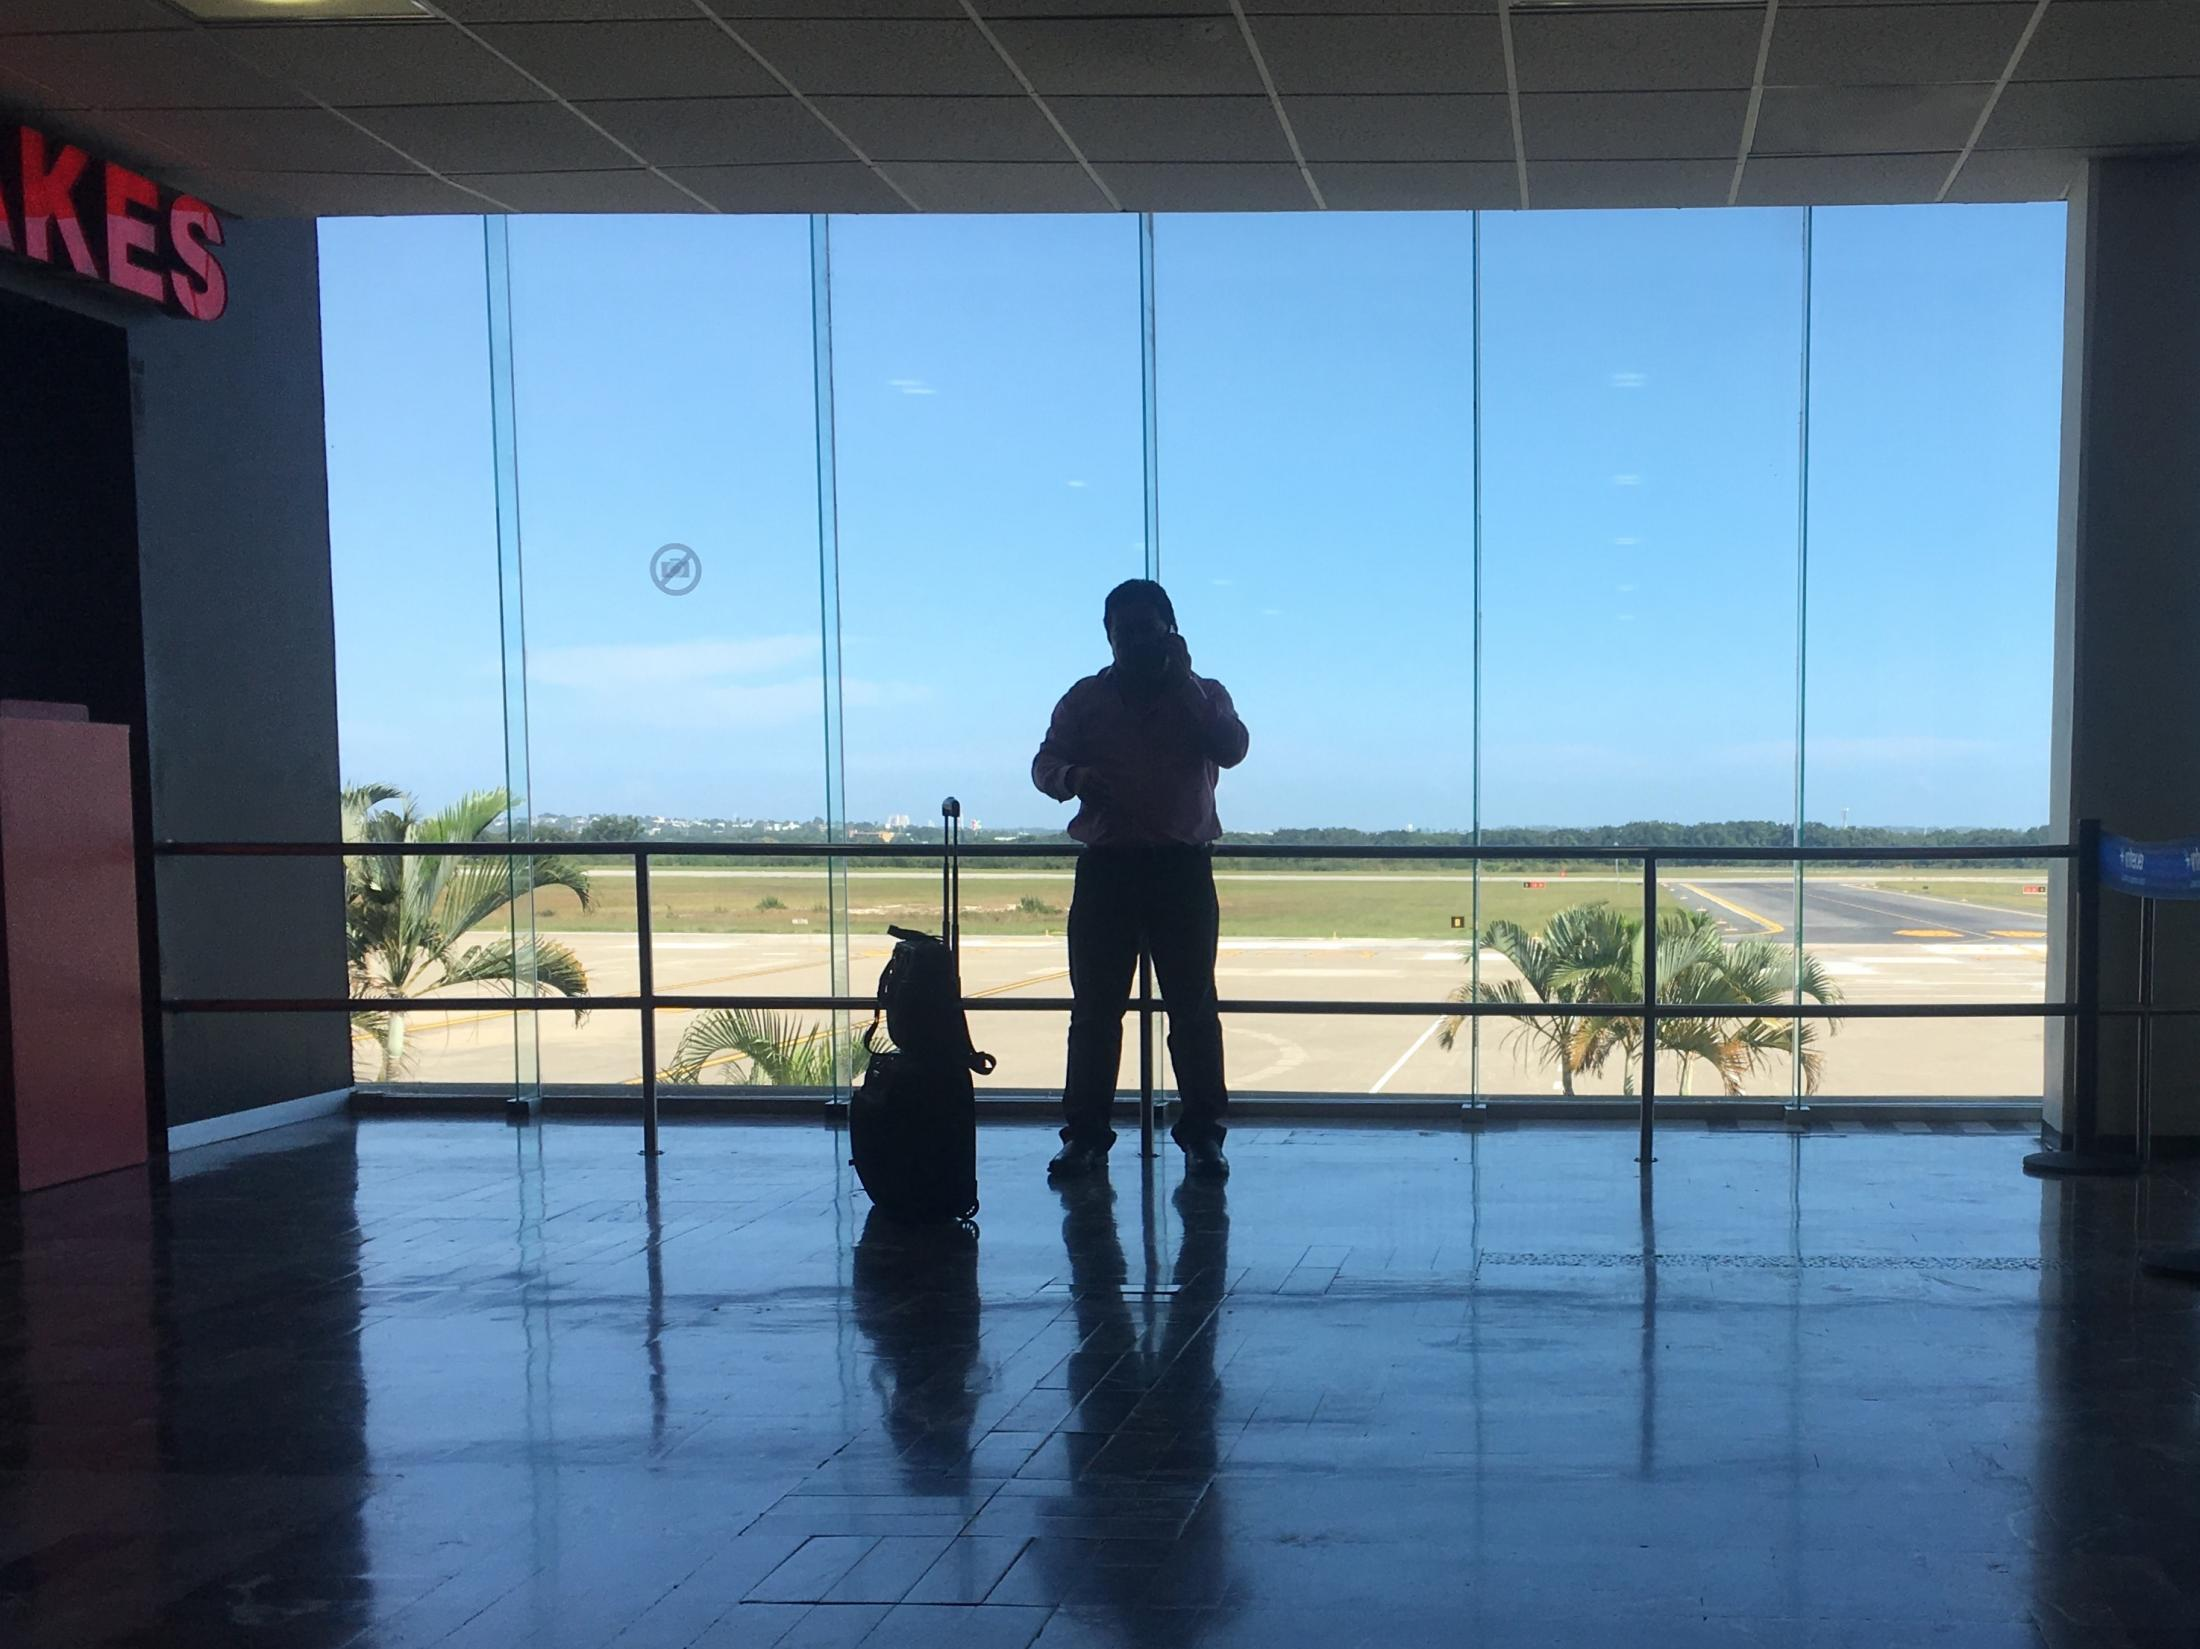 Tampico, Tamaulipas México. 2016 A man waits to enter terminal to board his flight at the airport. I was waiting to board a flight as well.